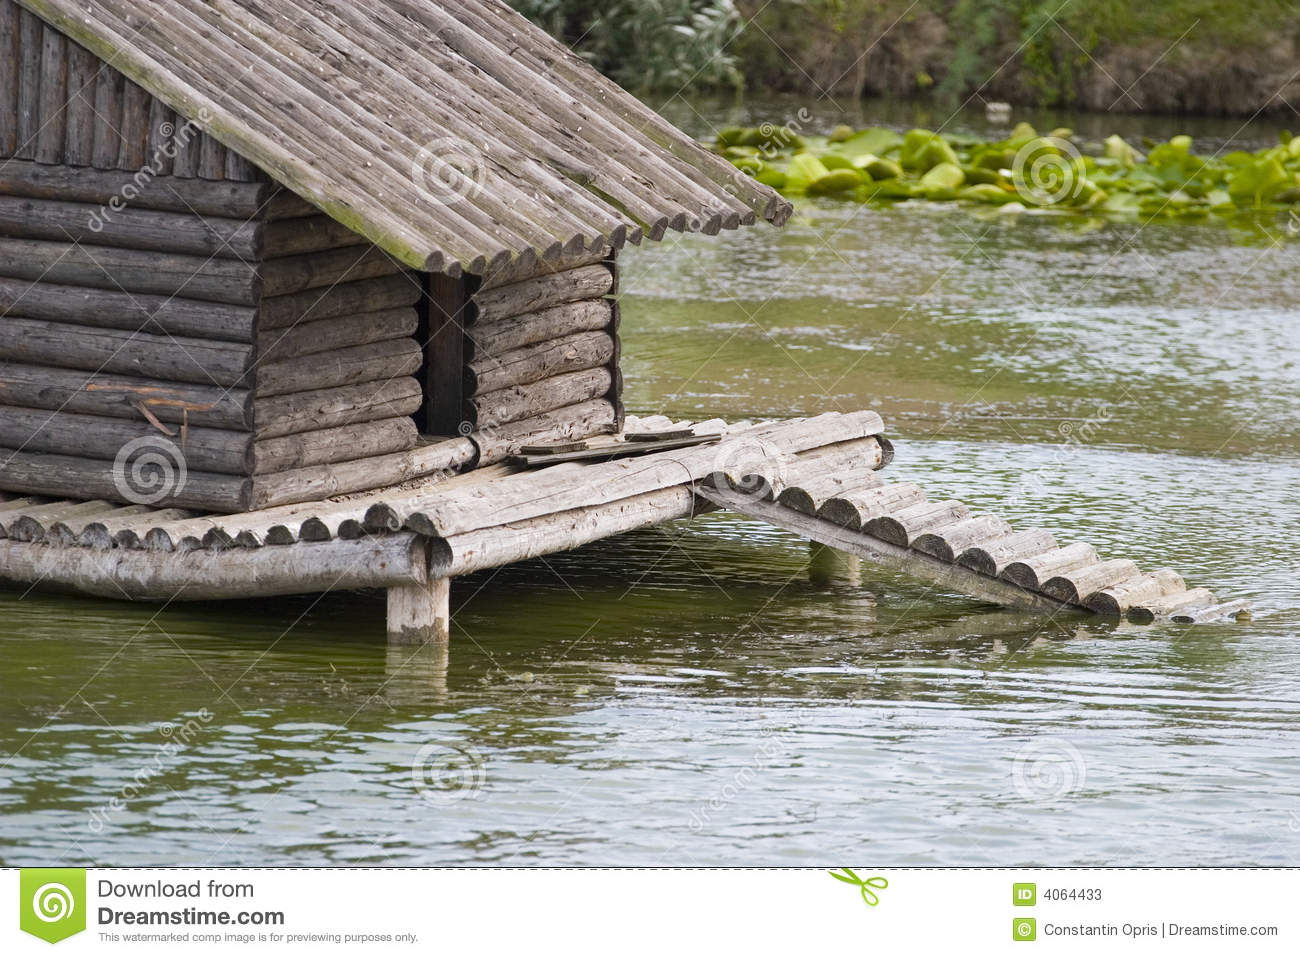 Duck shelter on lake stock photos image 4064433 for Building a duck house shelter